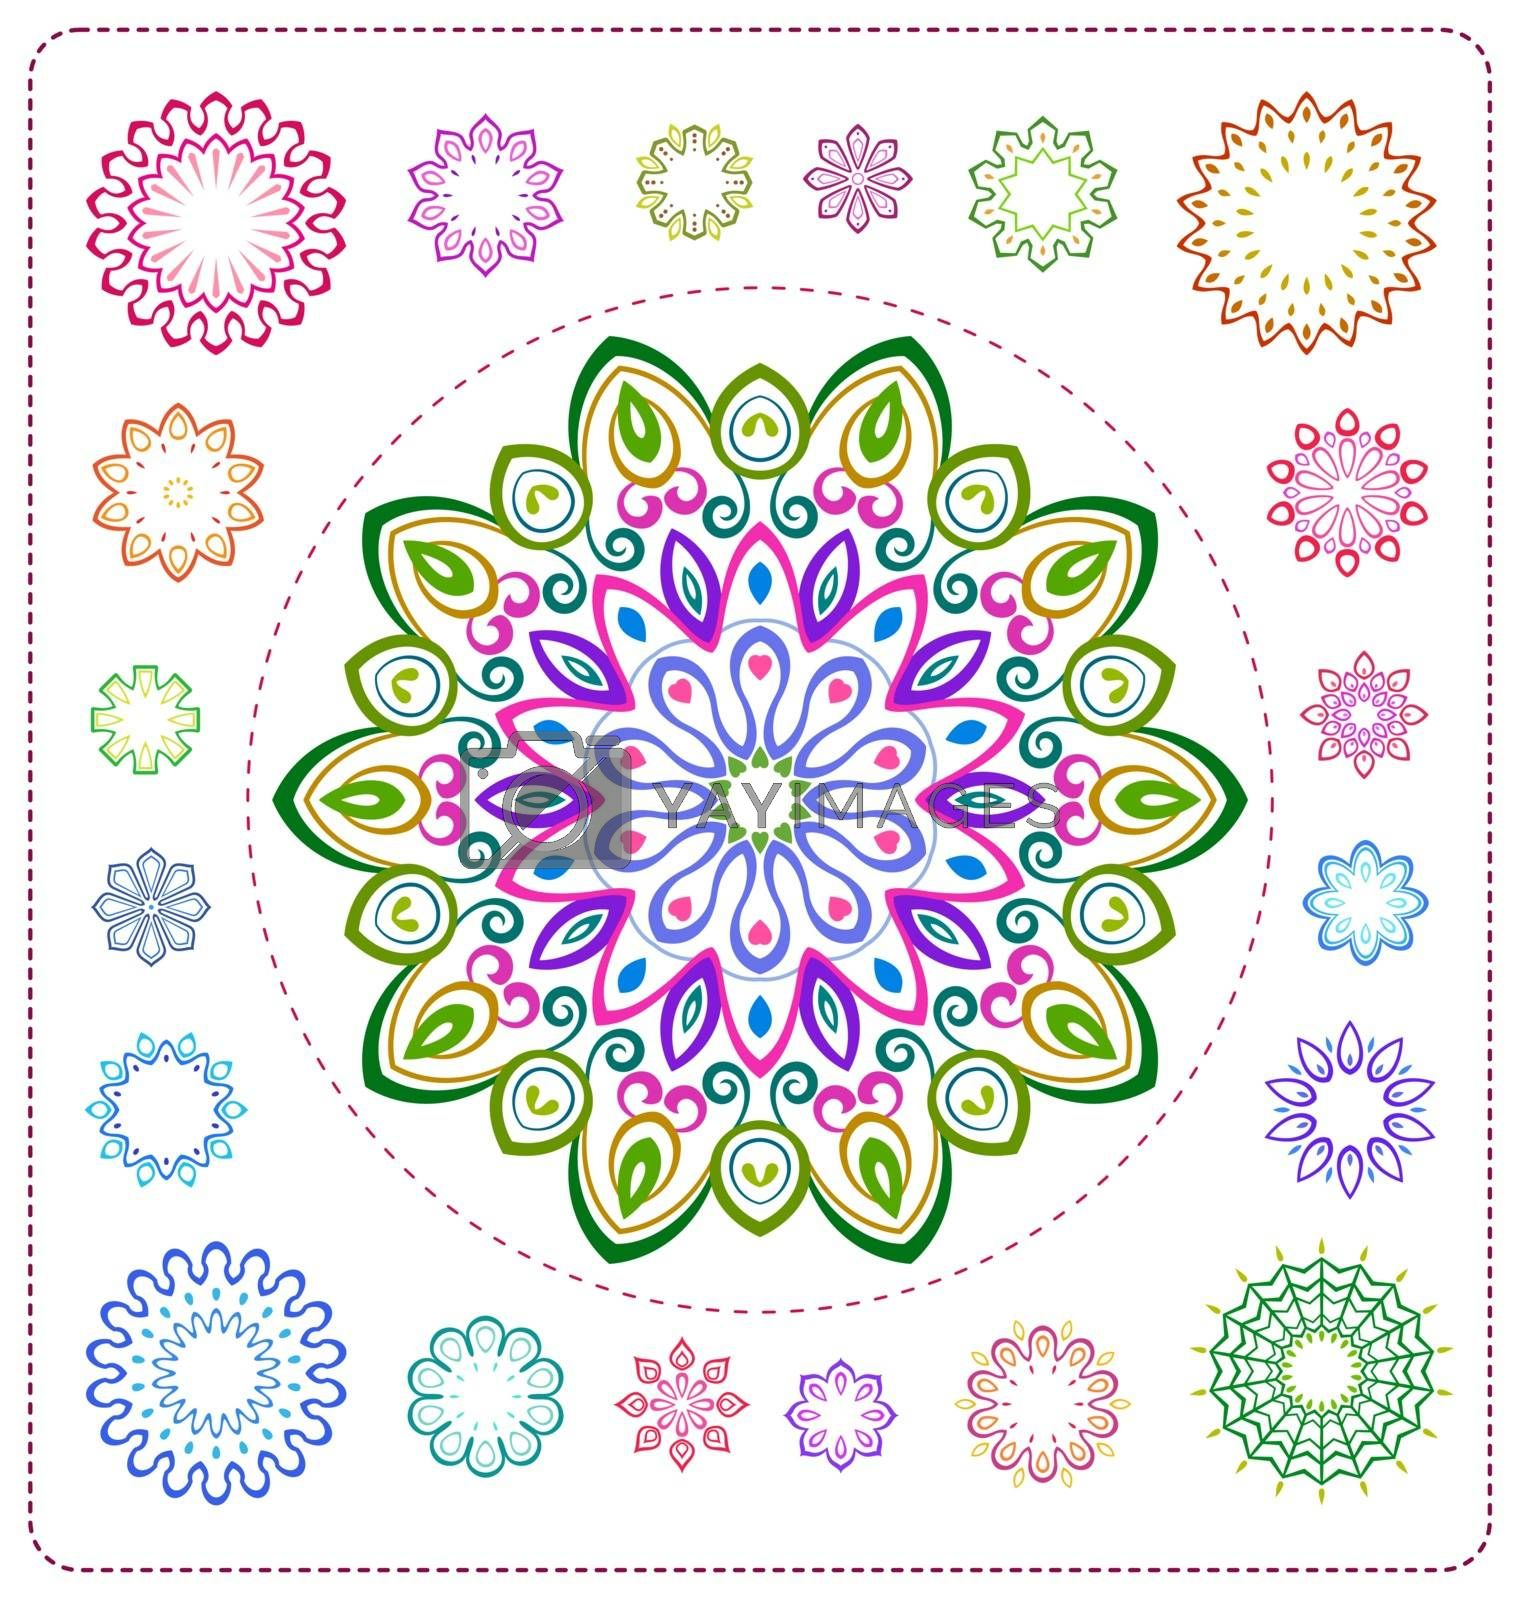 set of colorful mandala illustration in vector format for various use